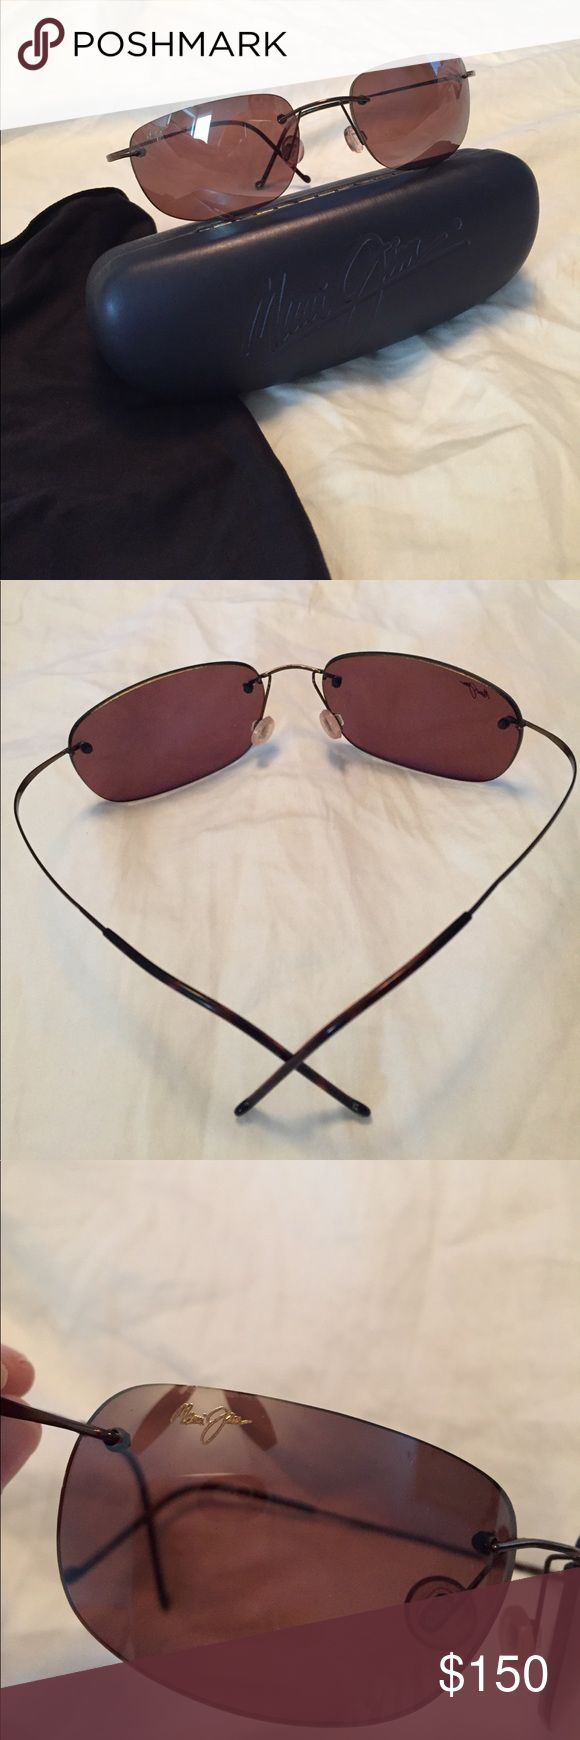 Maui Jim Sport Titanium w/ case and cloth Maui Jim Sport Titanium sunglasses, excellent condition. Comes with case and cloth (case shows minor wear on the inside). Polarized. Smoke free pet friendly home. Maui Jim Accessories Sunglasses